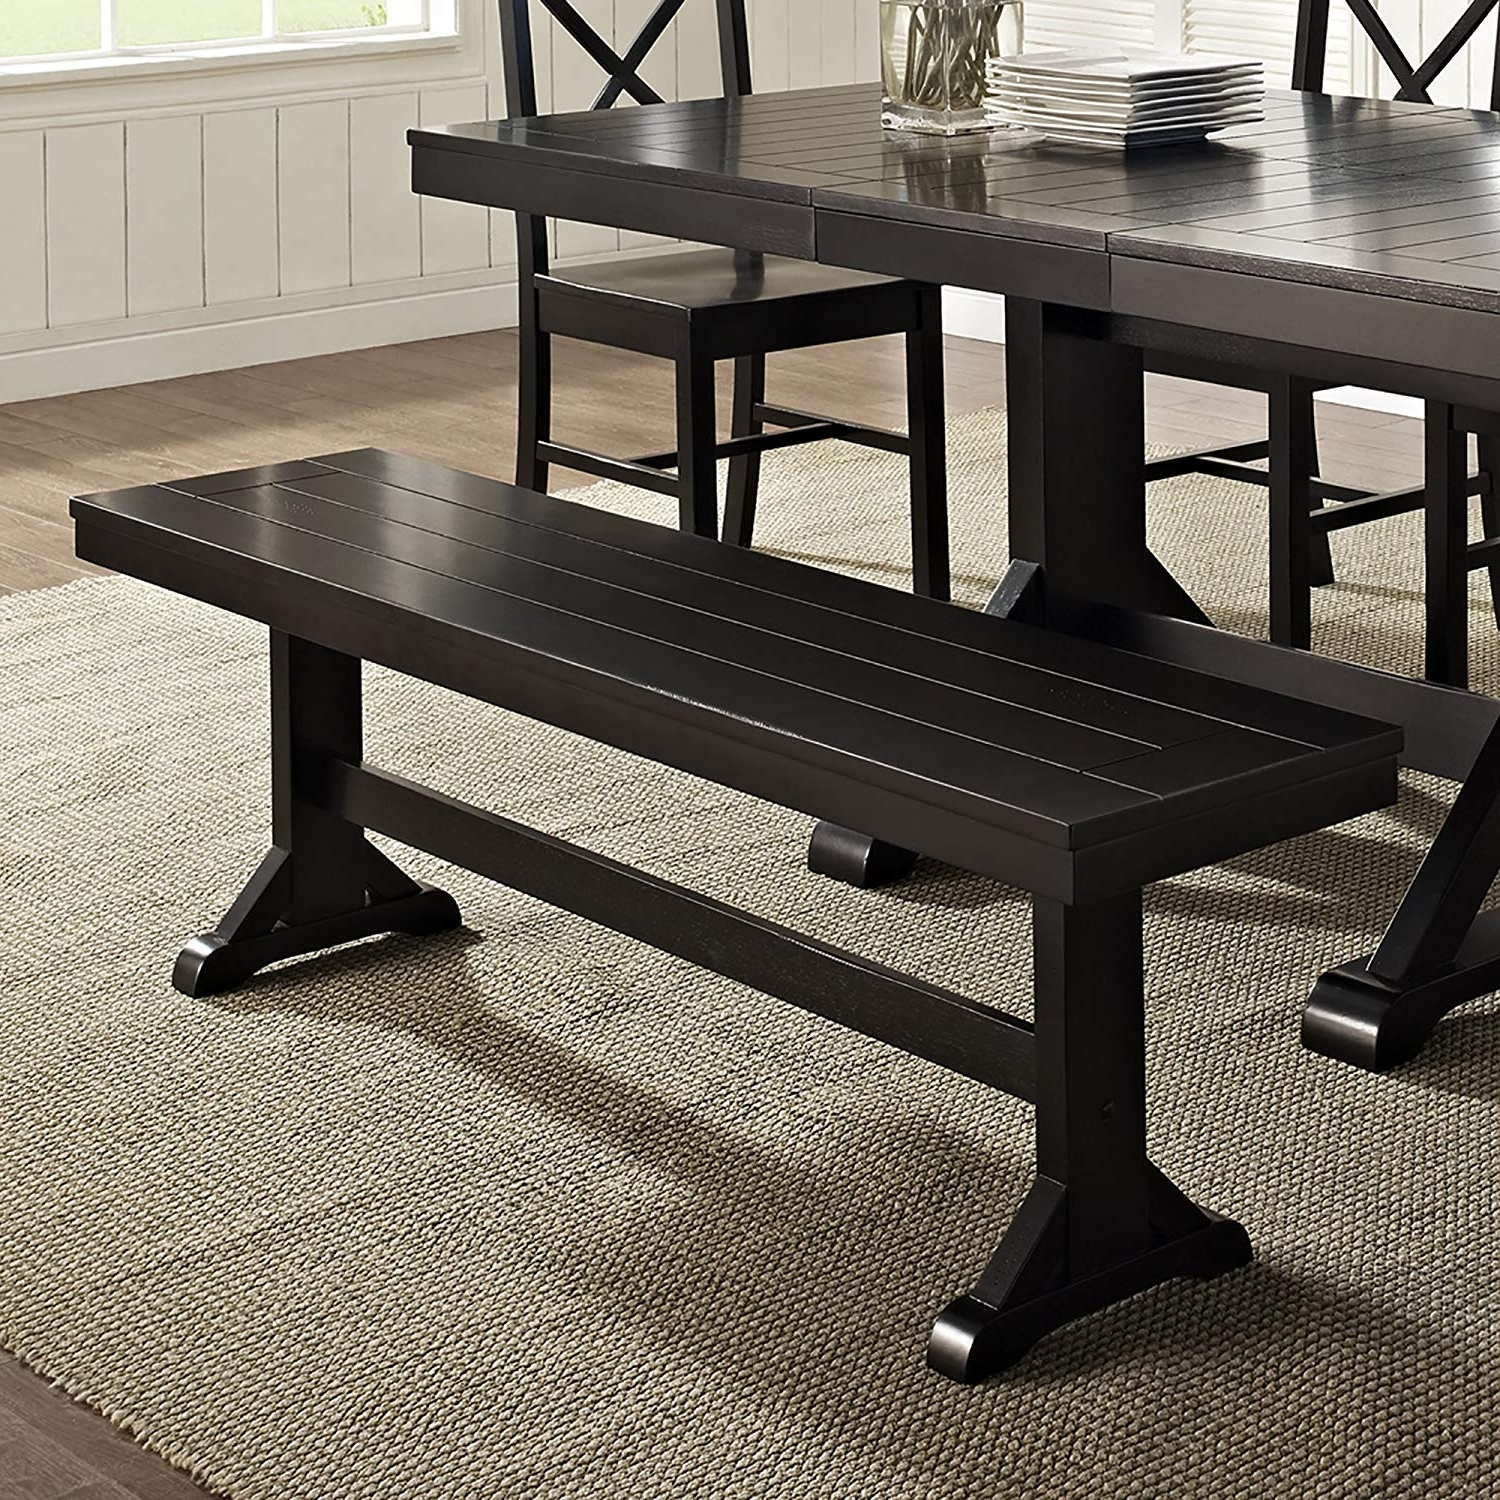 Newest Dining Tables Dark Wood pertaining to We Furniture Solid Wood Black Dining Bench